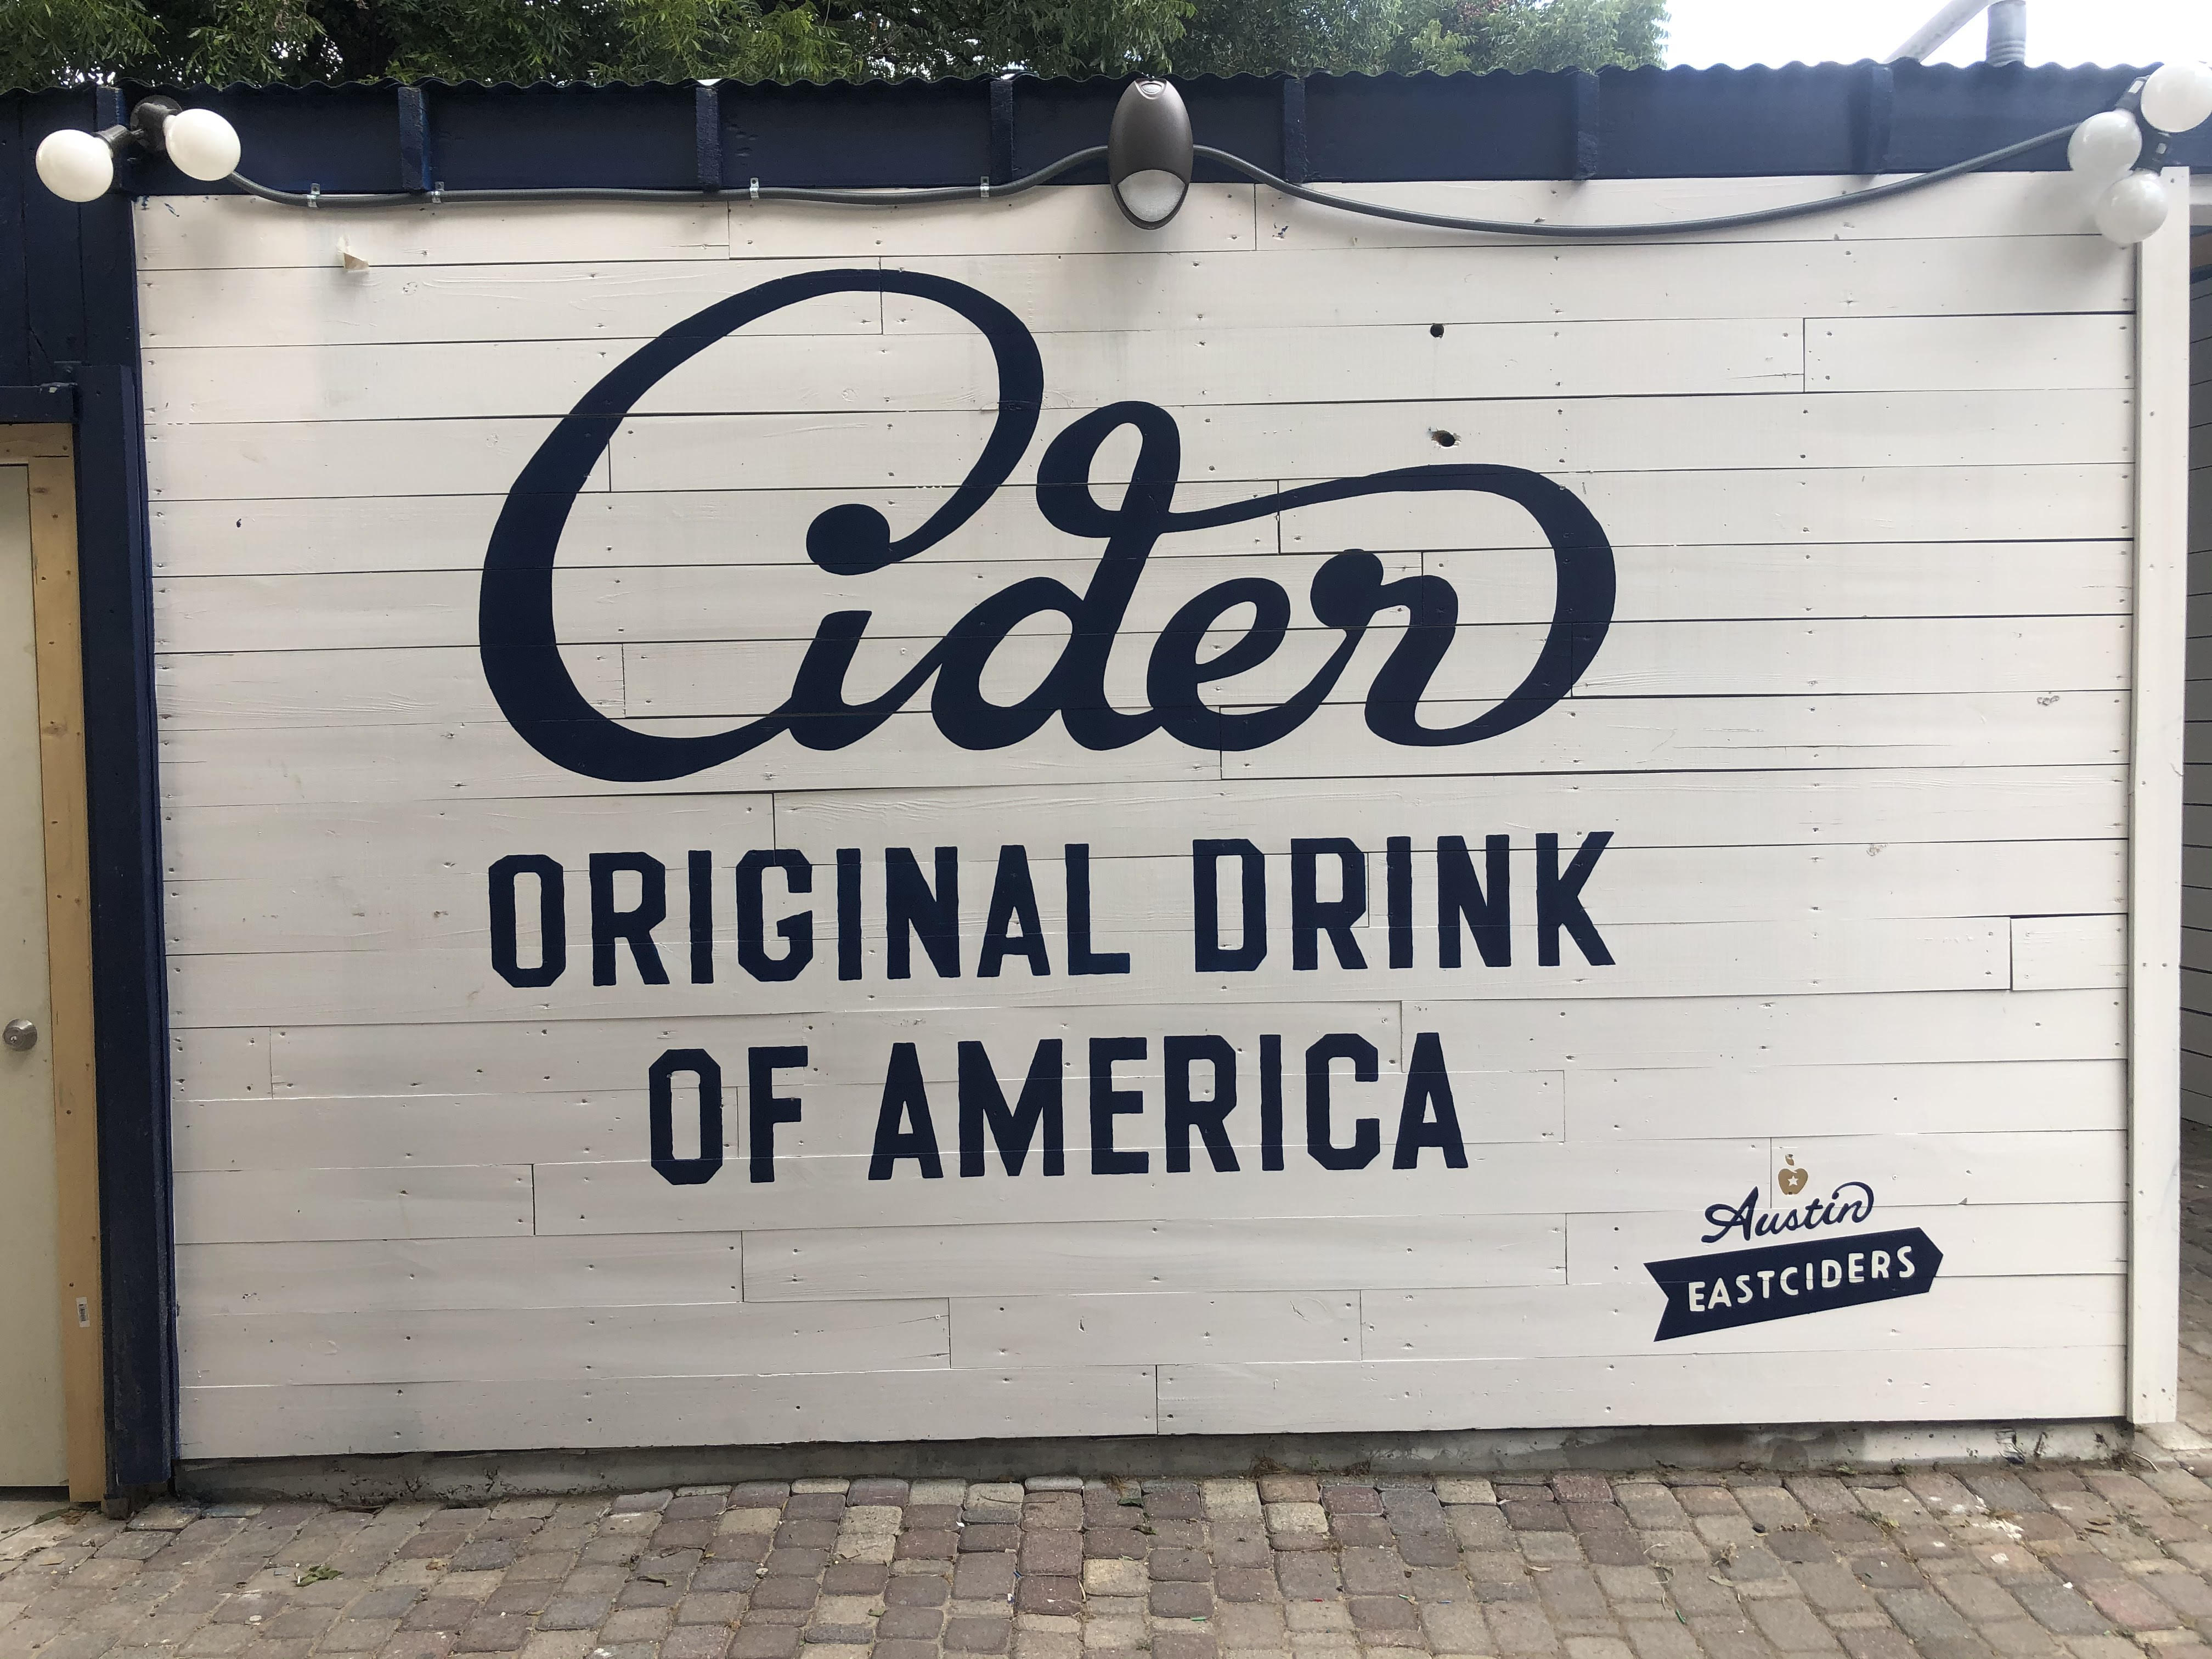 Eastciders